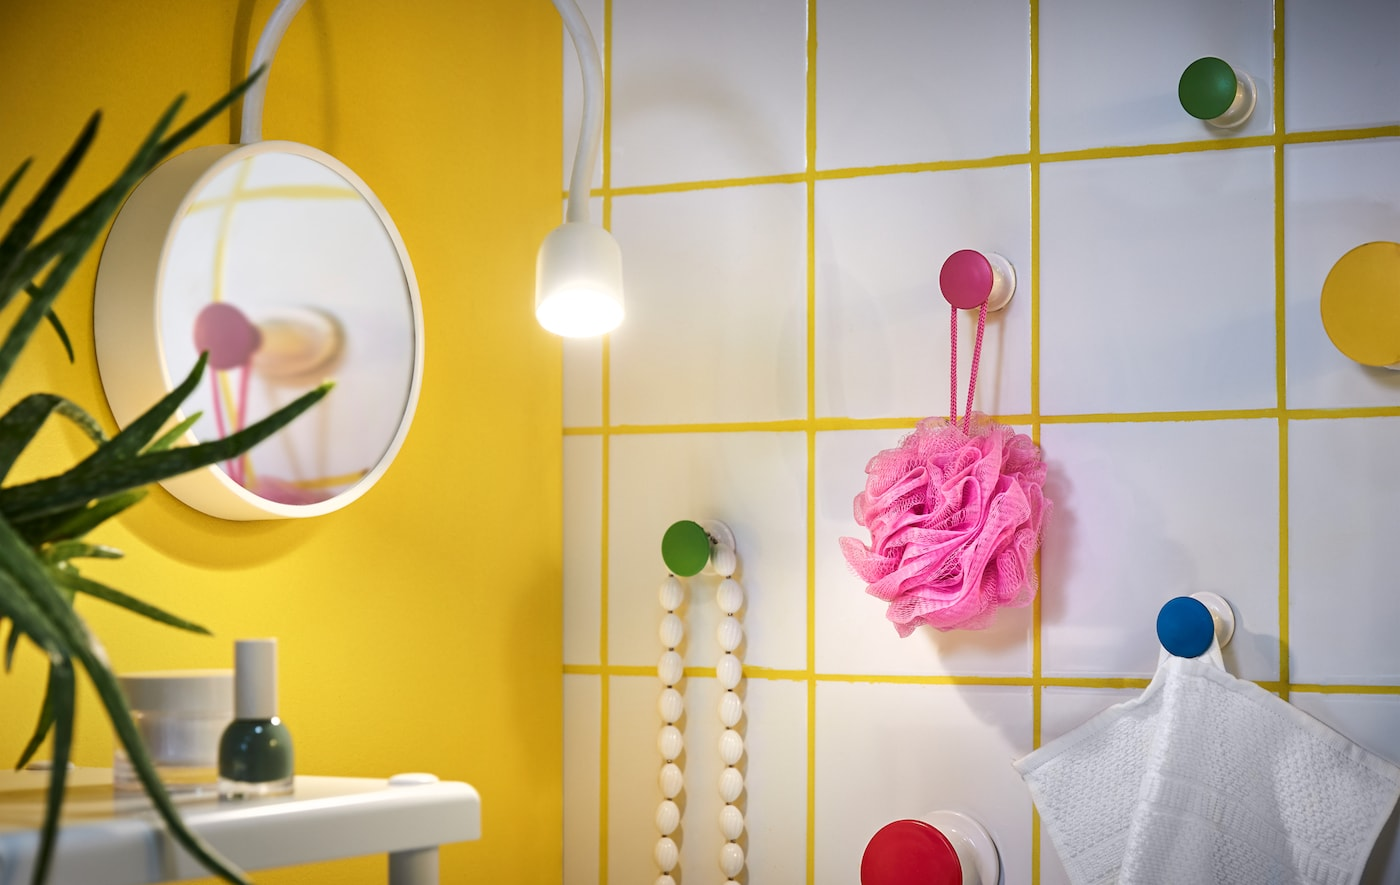 If you are sharing a small bathroom, it's all about finding ways to store your stuff. Use a bare wall and put up hangers to hang your stuff from. These multi-coloured ones called LOSJÖN are easy to attach as they have self-adhesive backing!